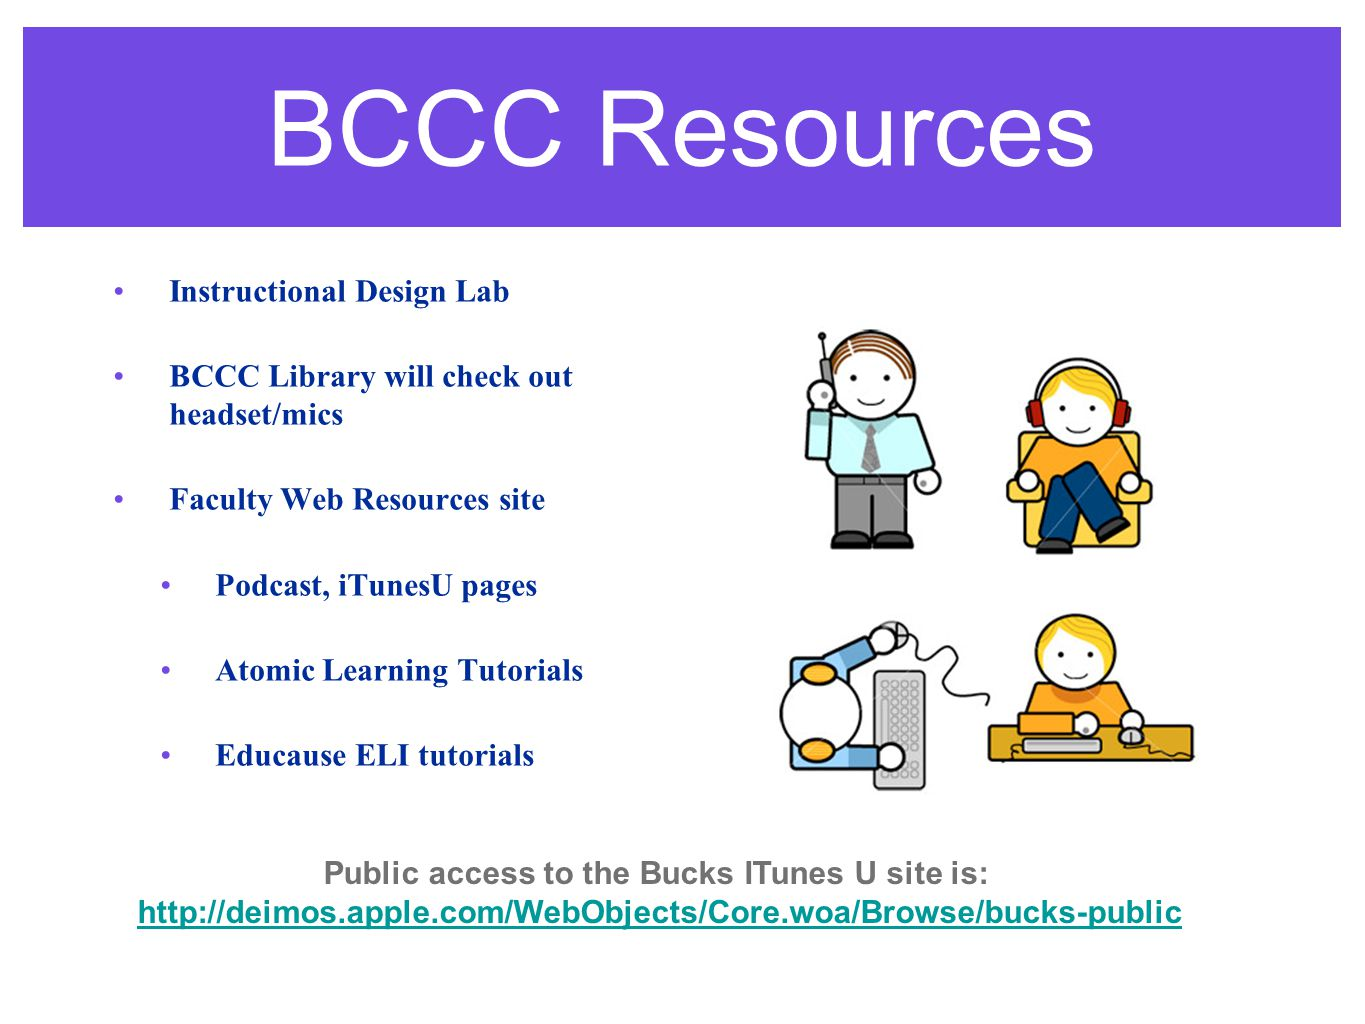 BCCC Resources Instructional Design Lab BCCC Library will check out headset/mics Faculty Web Resources site Podcast, iTunesU pages Atomic Learning Tutorials Educause ELI tutorials Public access to the Bucks ITunes U site is: http://deimos.apple.com/WebObjects/Core.woa/Browse/bucks-public